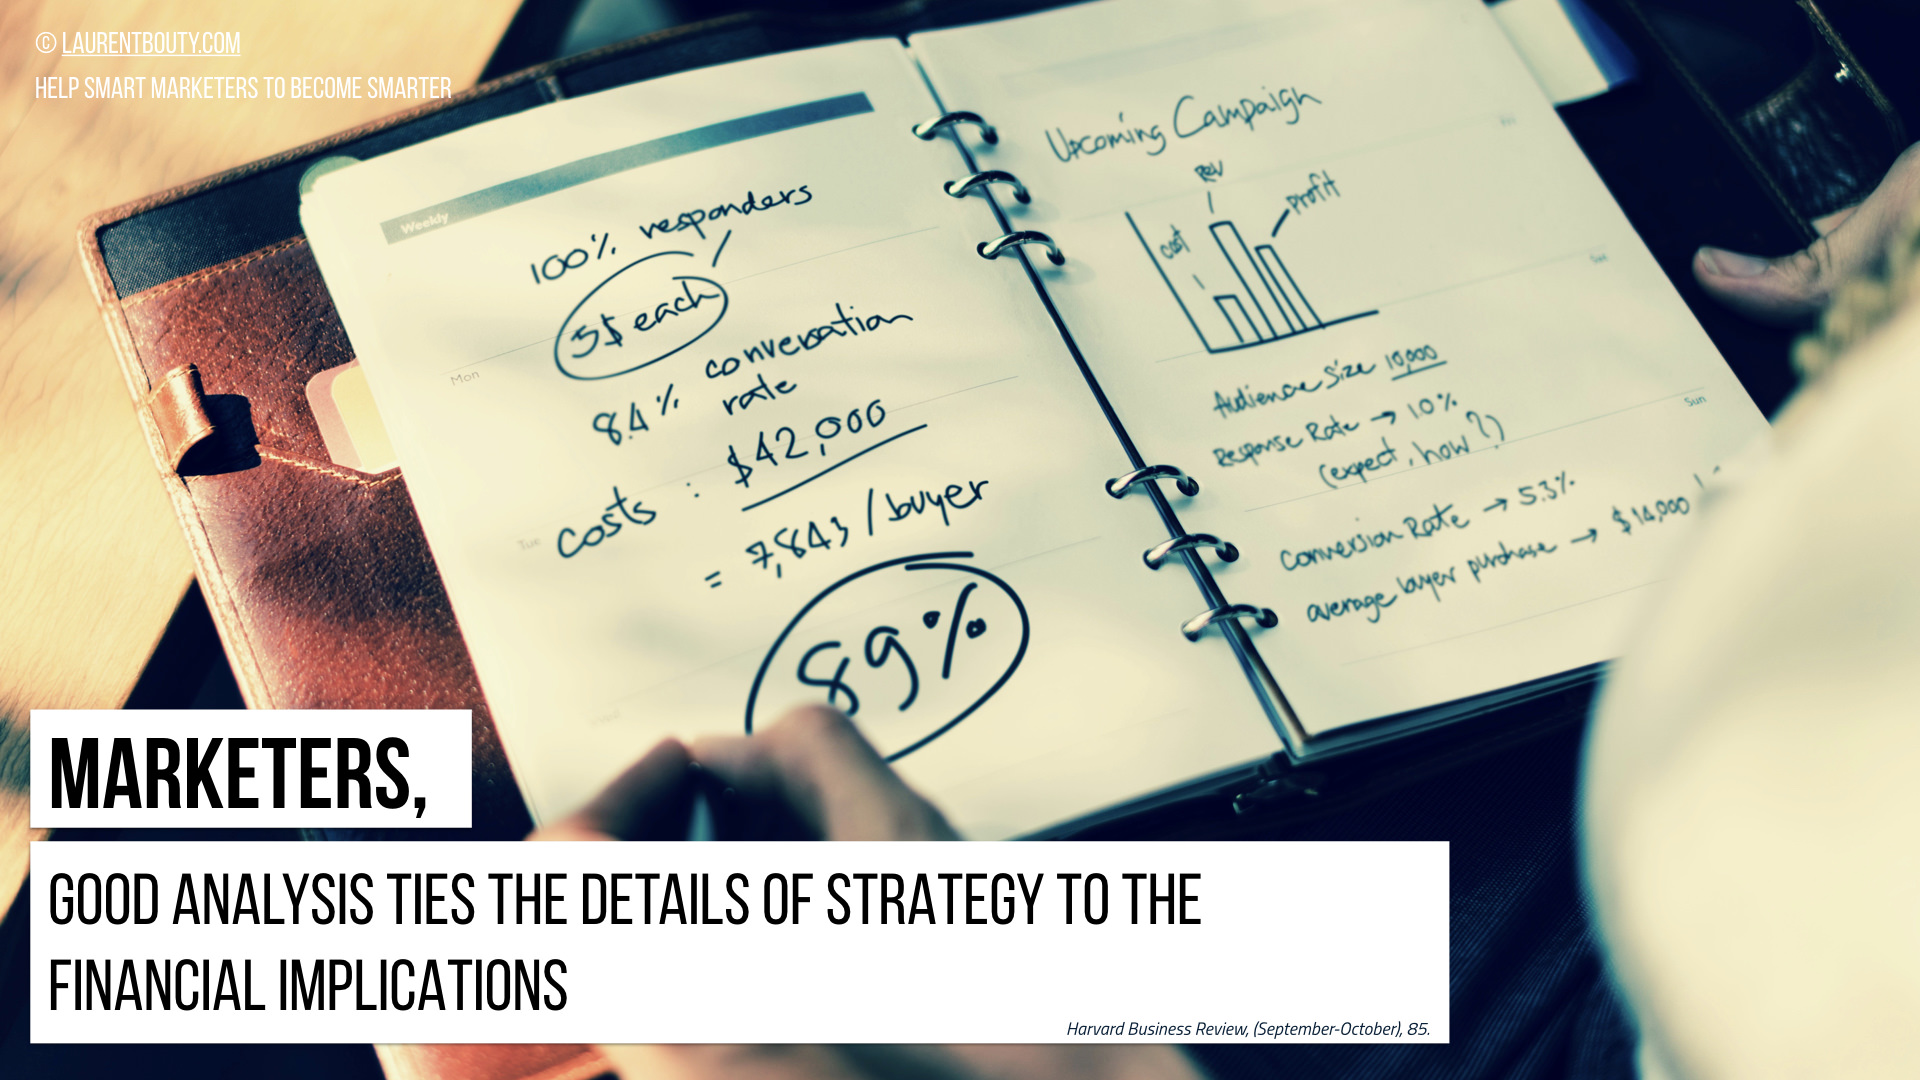 Marketers, Good analysis ties the details of strategy to the financial implications